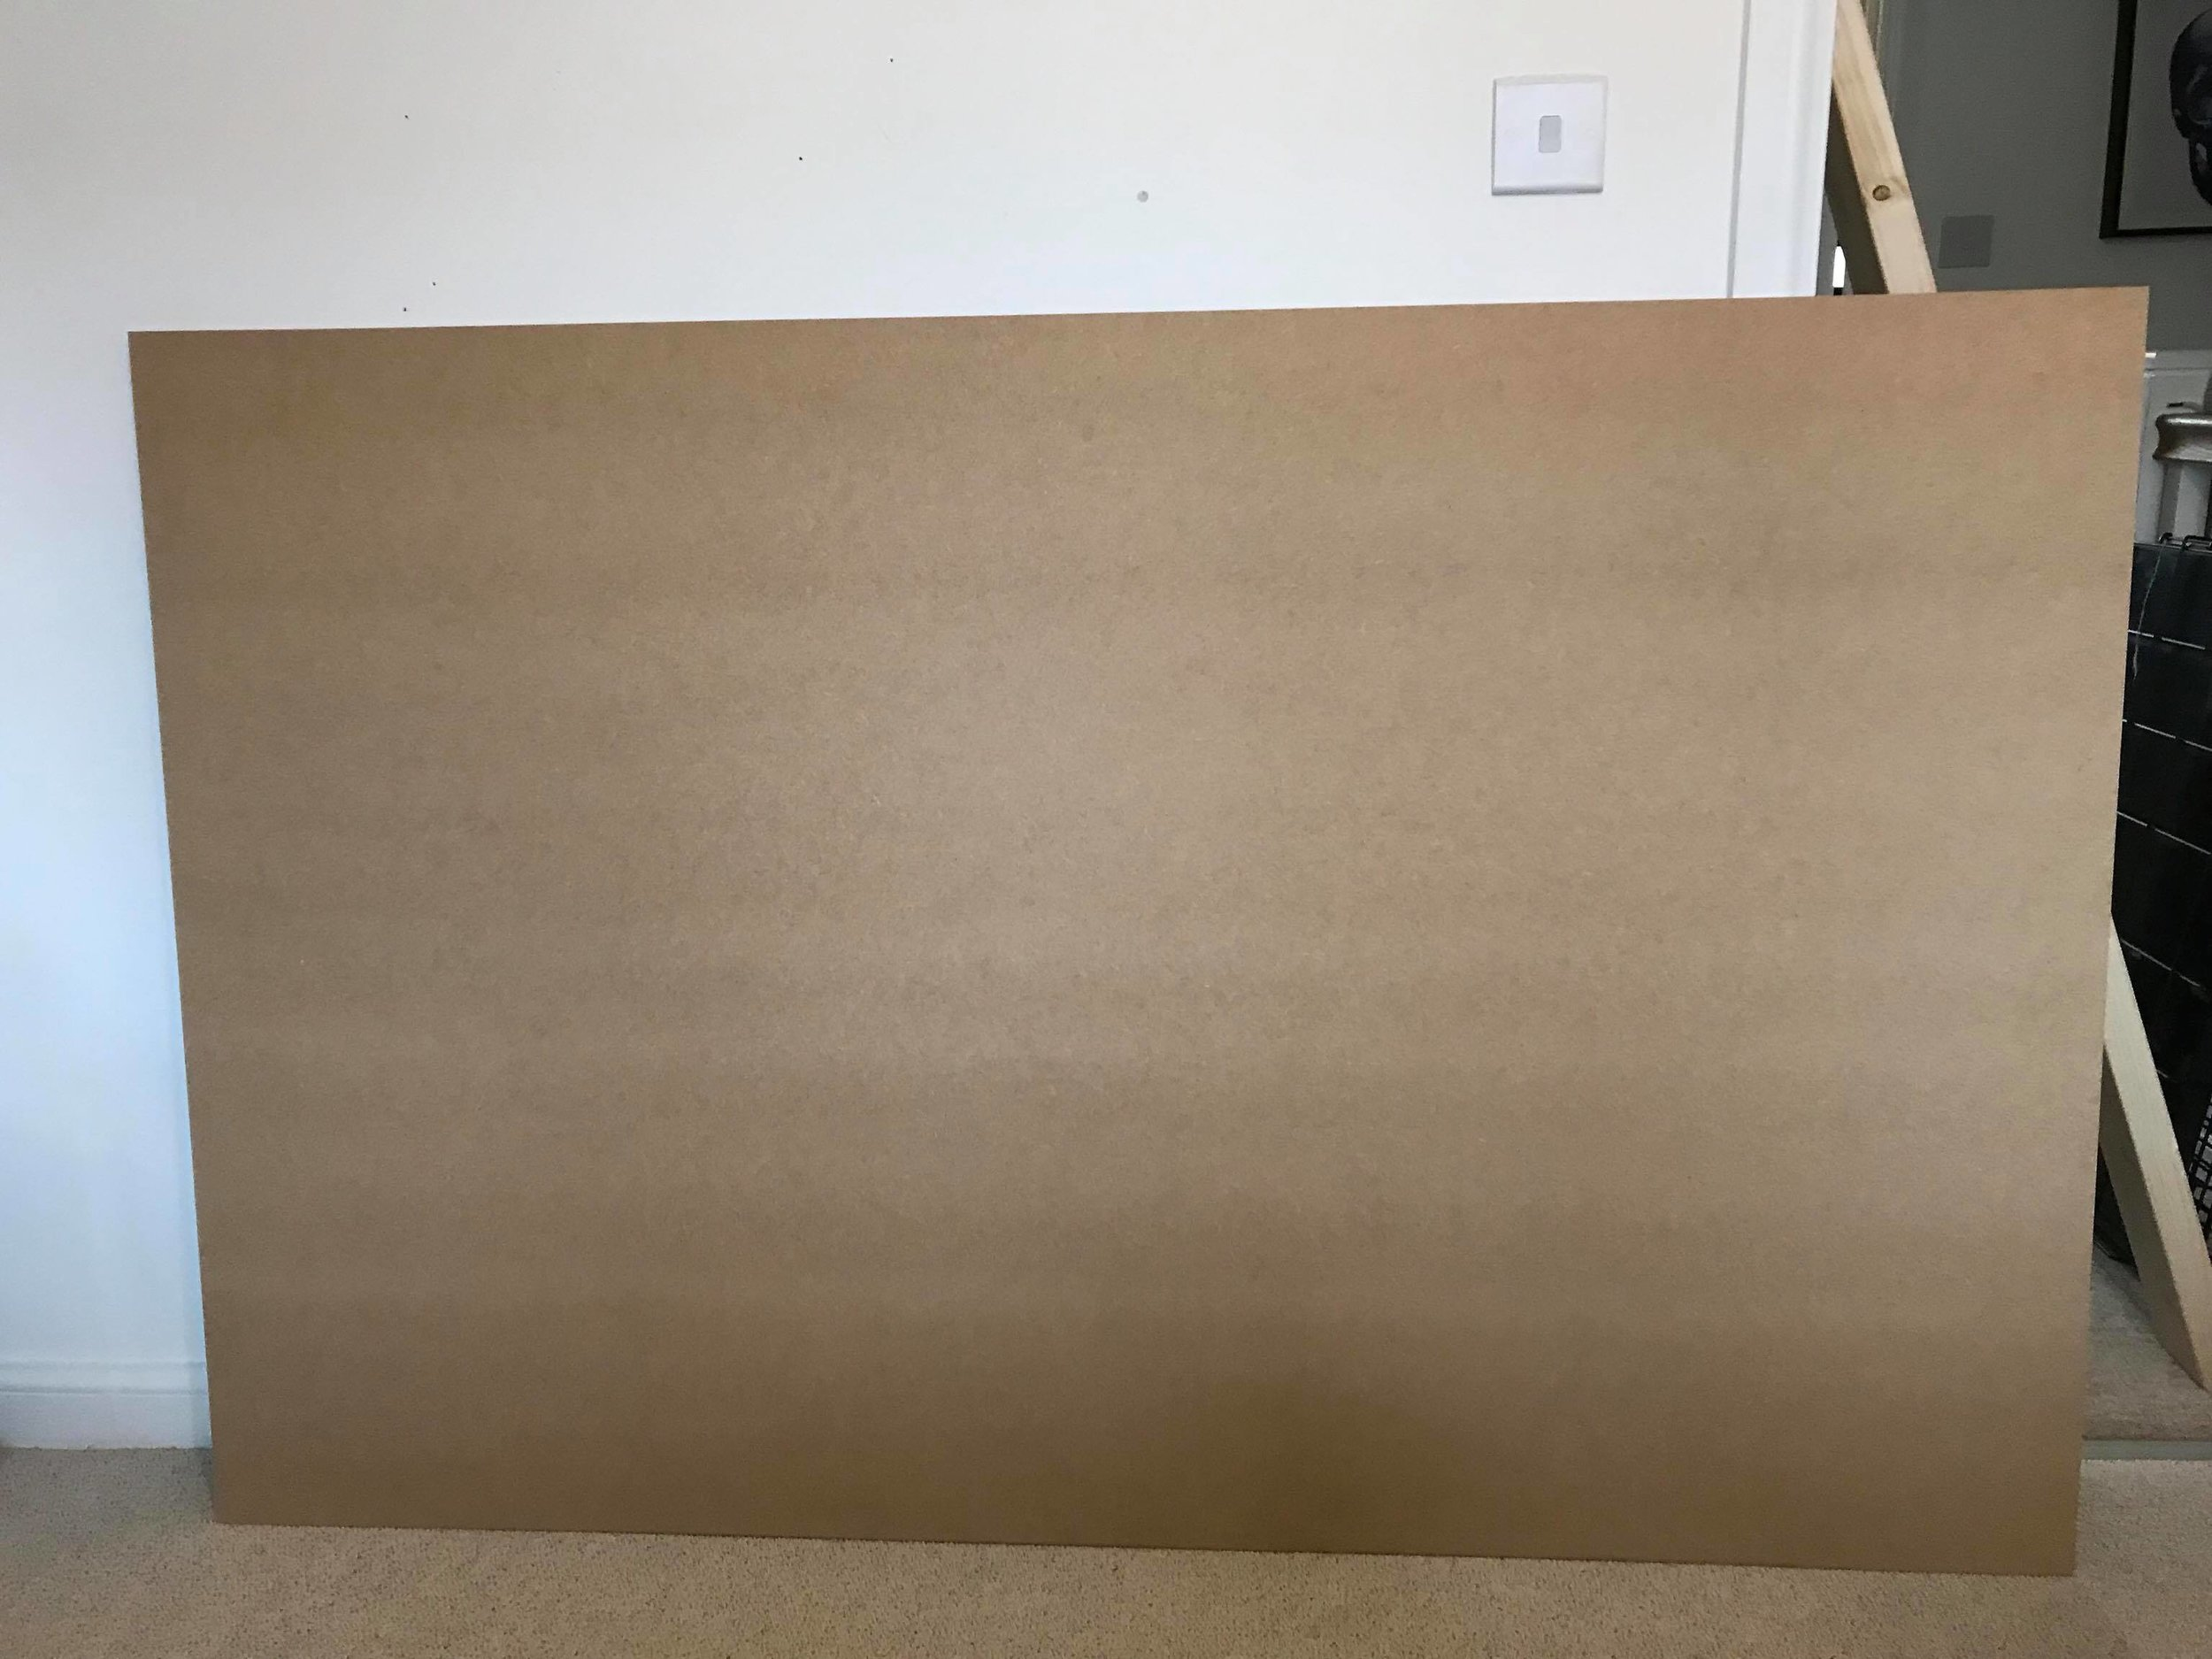 The headboard piece cut to size